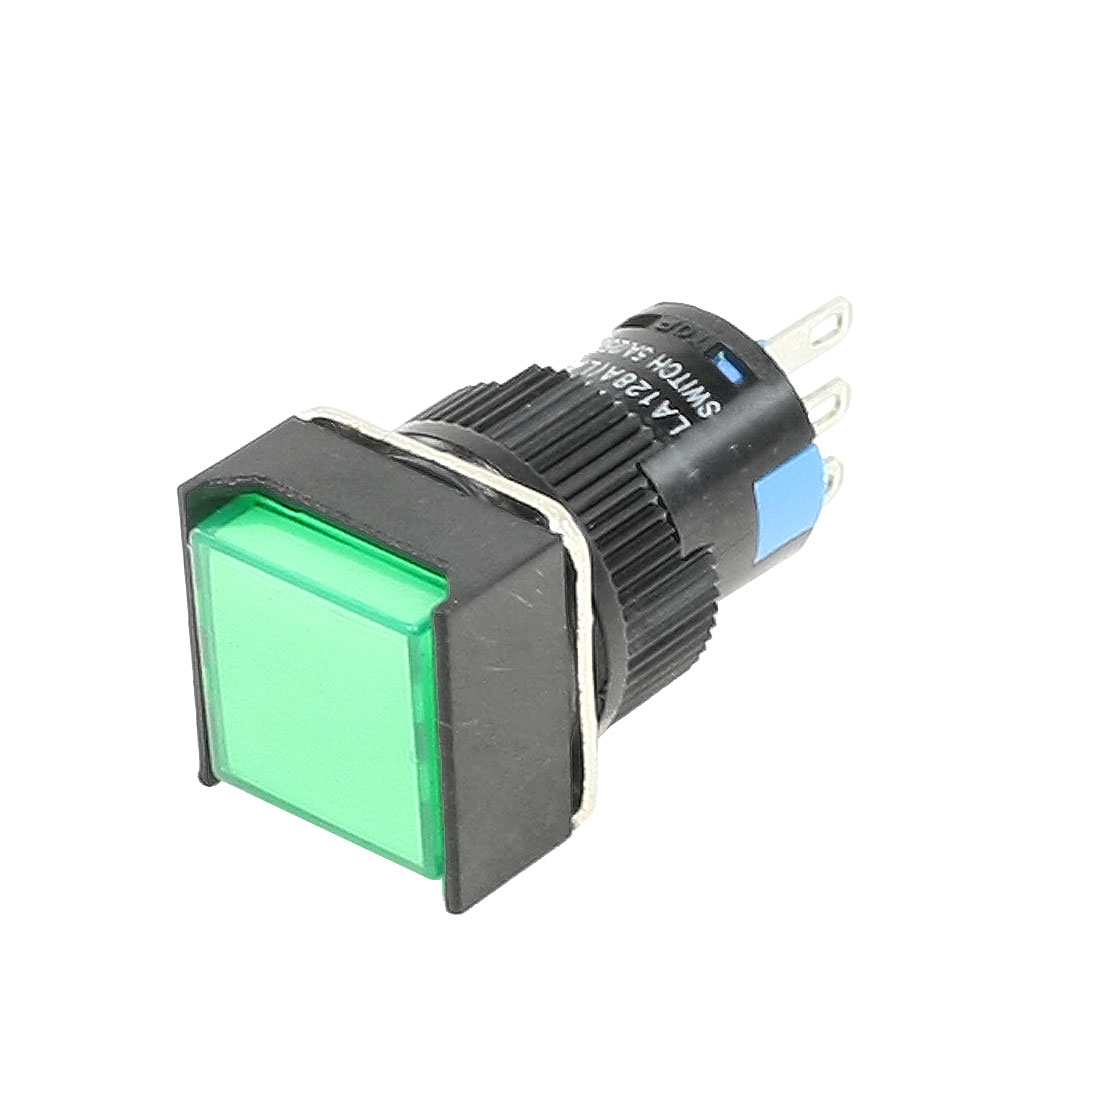 AC 250V 5A SPDT 1NO 1NC 3 Pins Momentary Green Square Push Button Switch